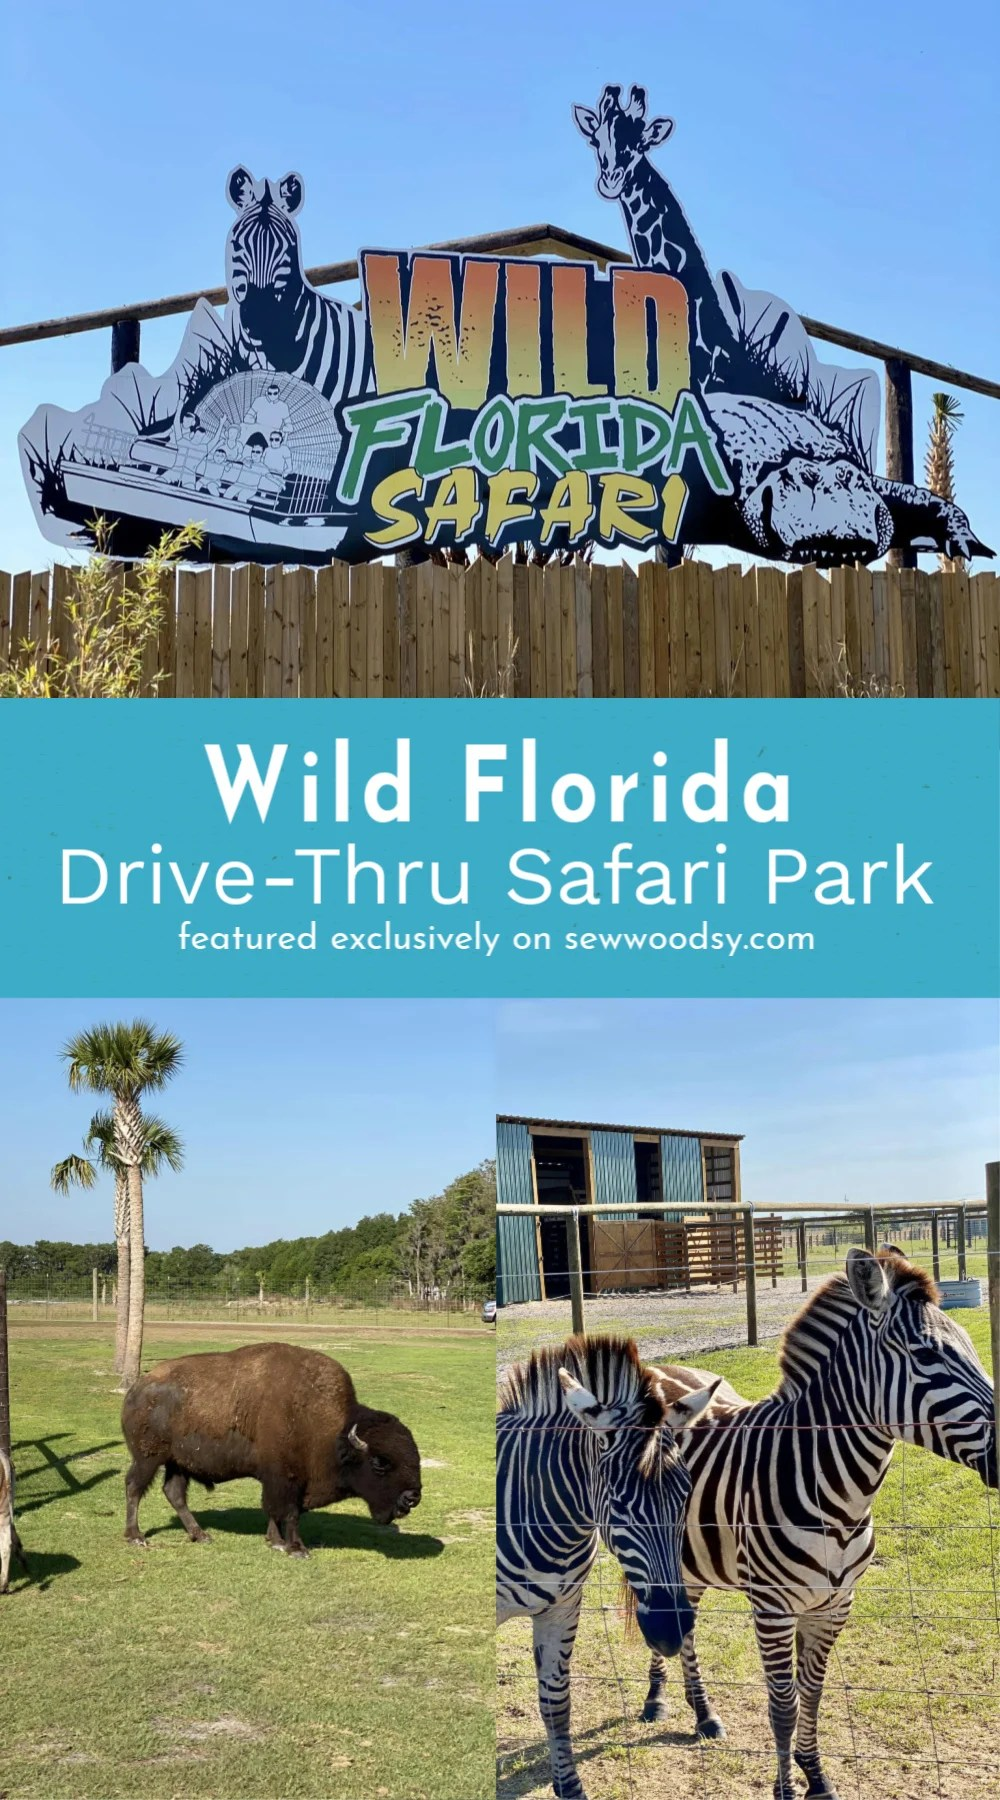 Wild Florida Drive-Thru Safari